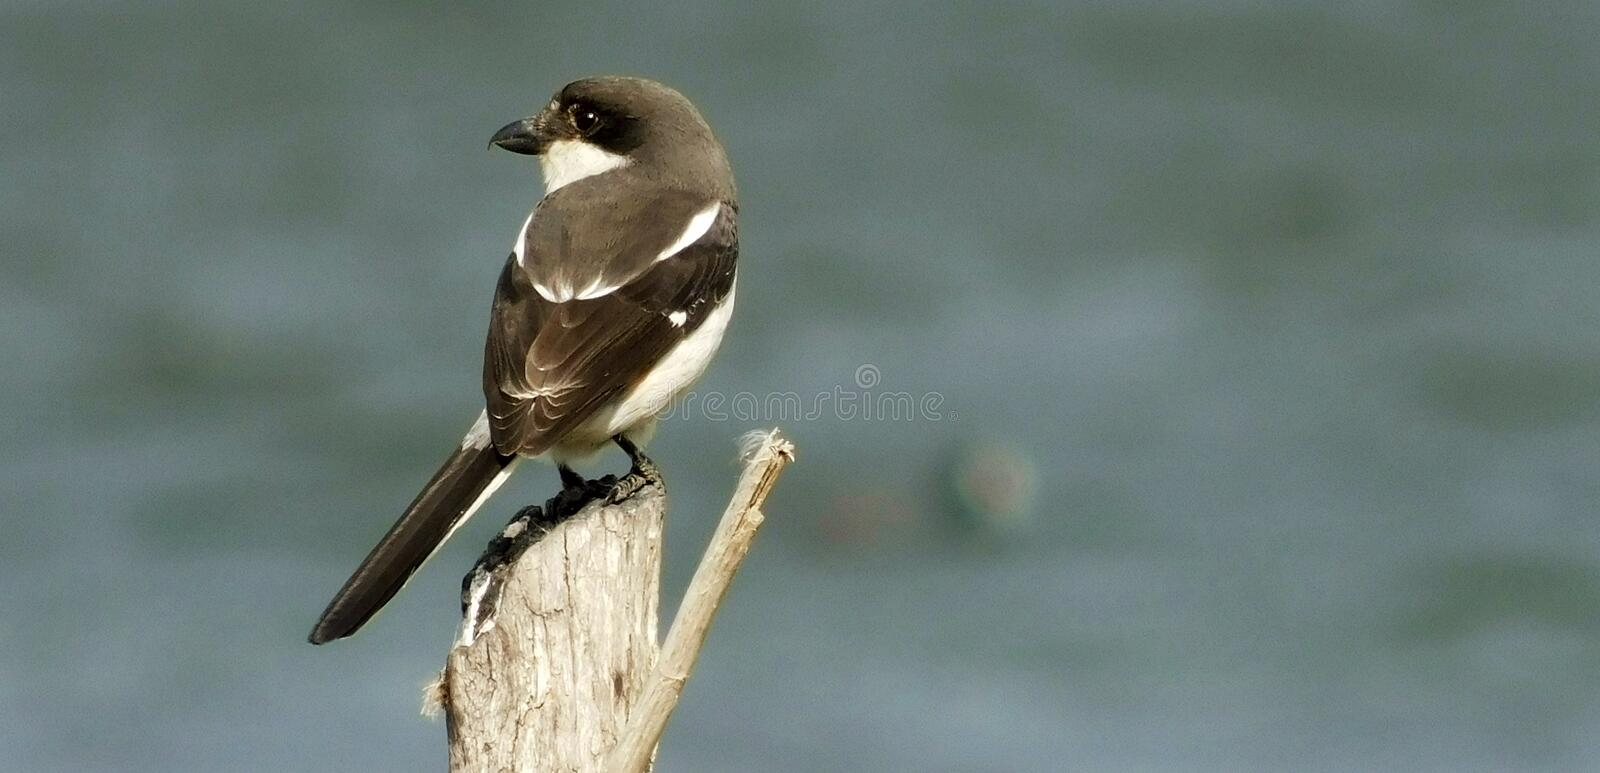 Fiscal Fly Catcher. A fiscal fly catcher sitting on a tree stump at the water`s edge in the morning sunlight royalty free stock photo